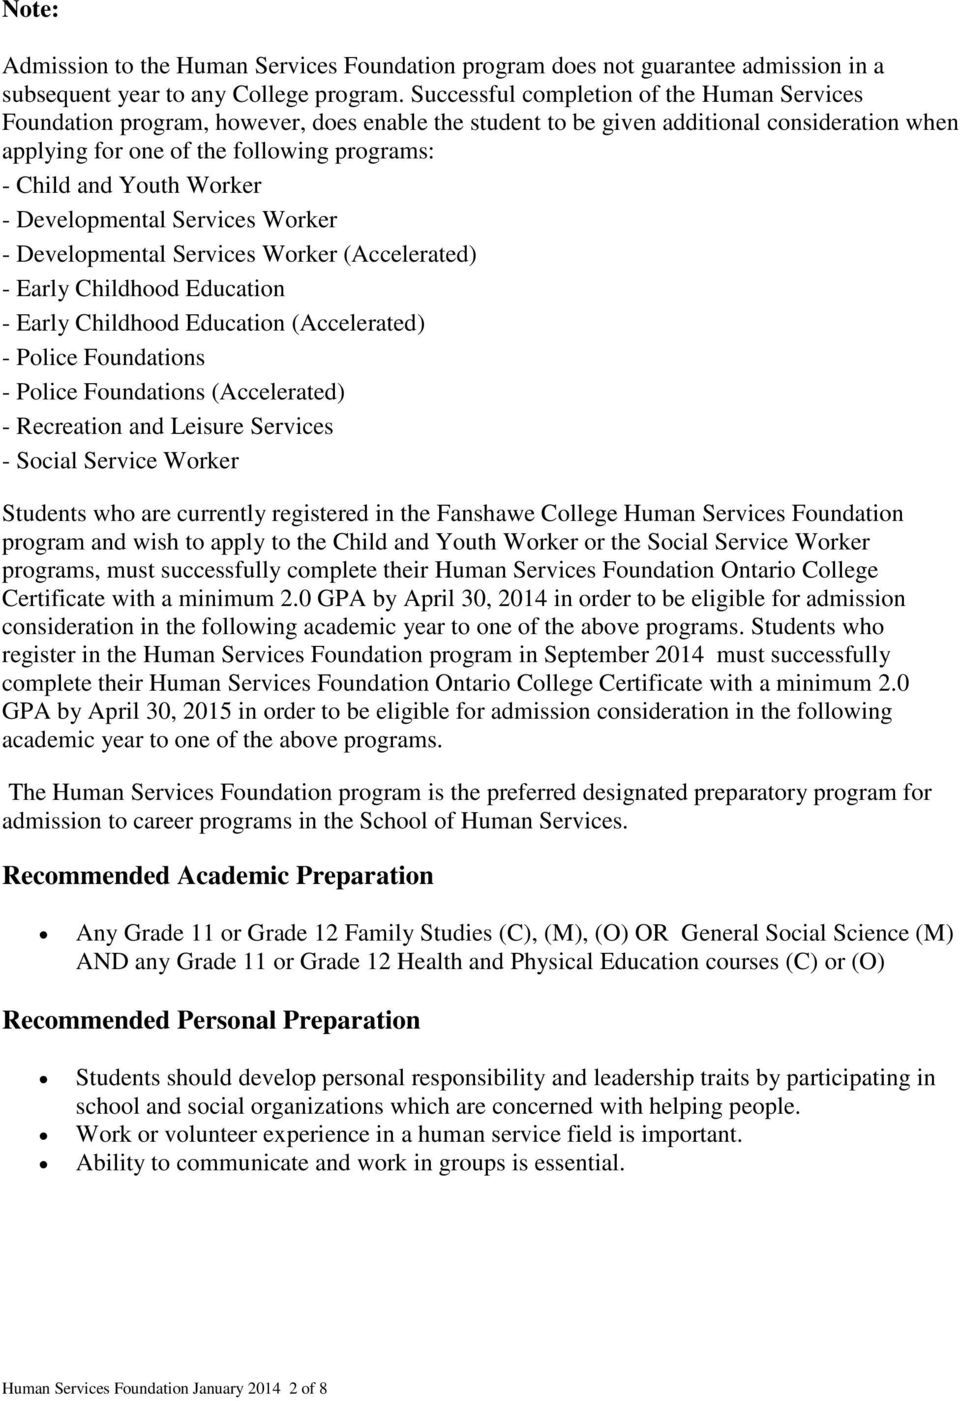 Youth Worker - Developmental Services Worker - Developmental Services Worker (Accelerated) - Early Childhood Education - Early Childhood Education (Accelerated) - Police Foundations - Police